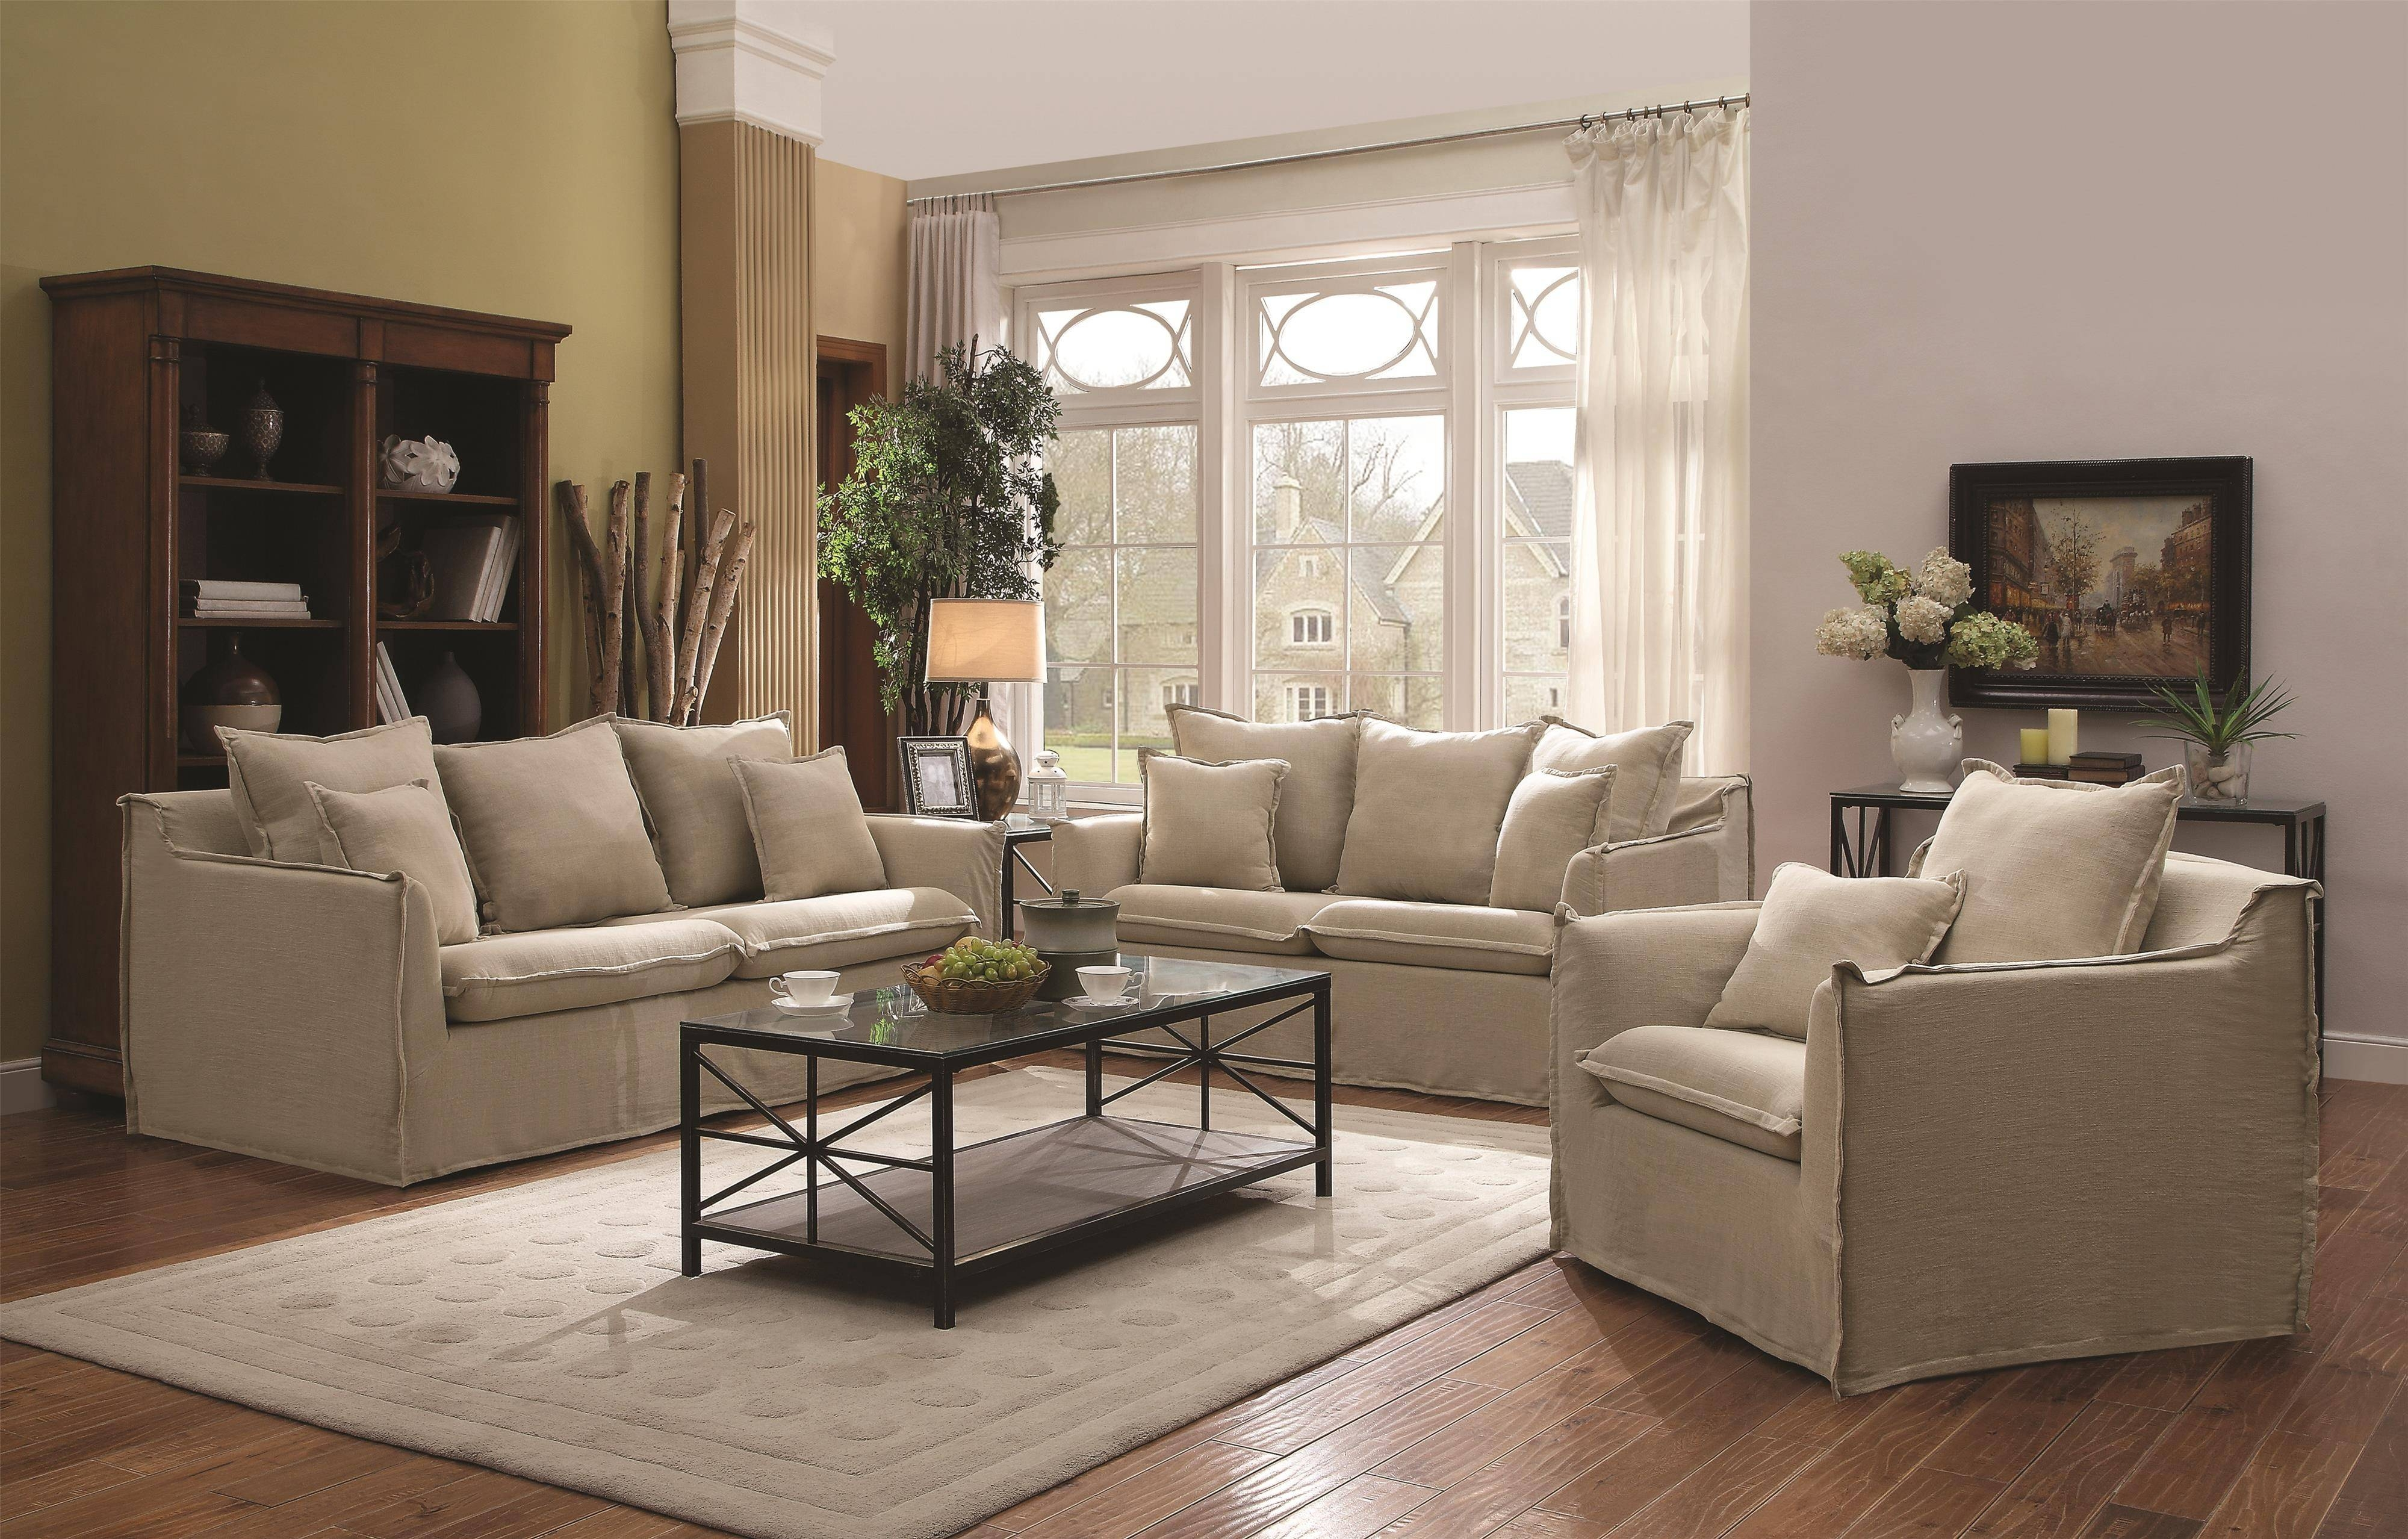 Top Sofas With Washable Slipcovers With Nantucket Sofa Darby Sofa for Washable Sofas (Image 29 of 30)